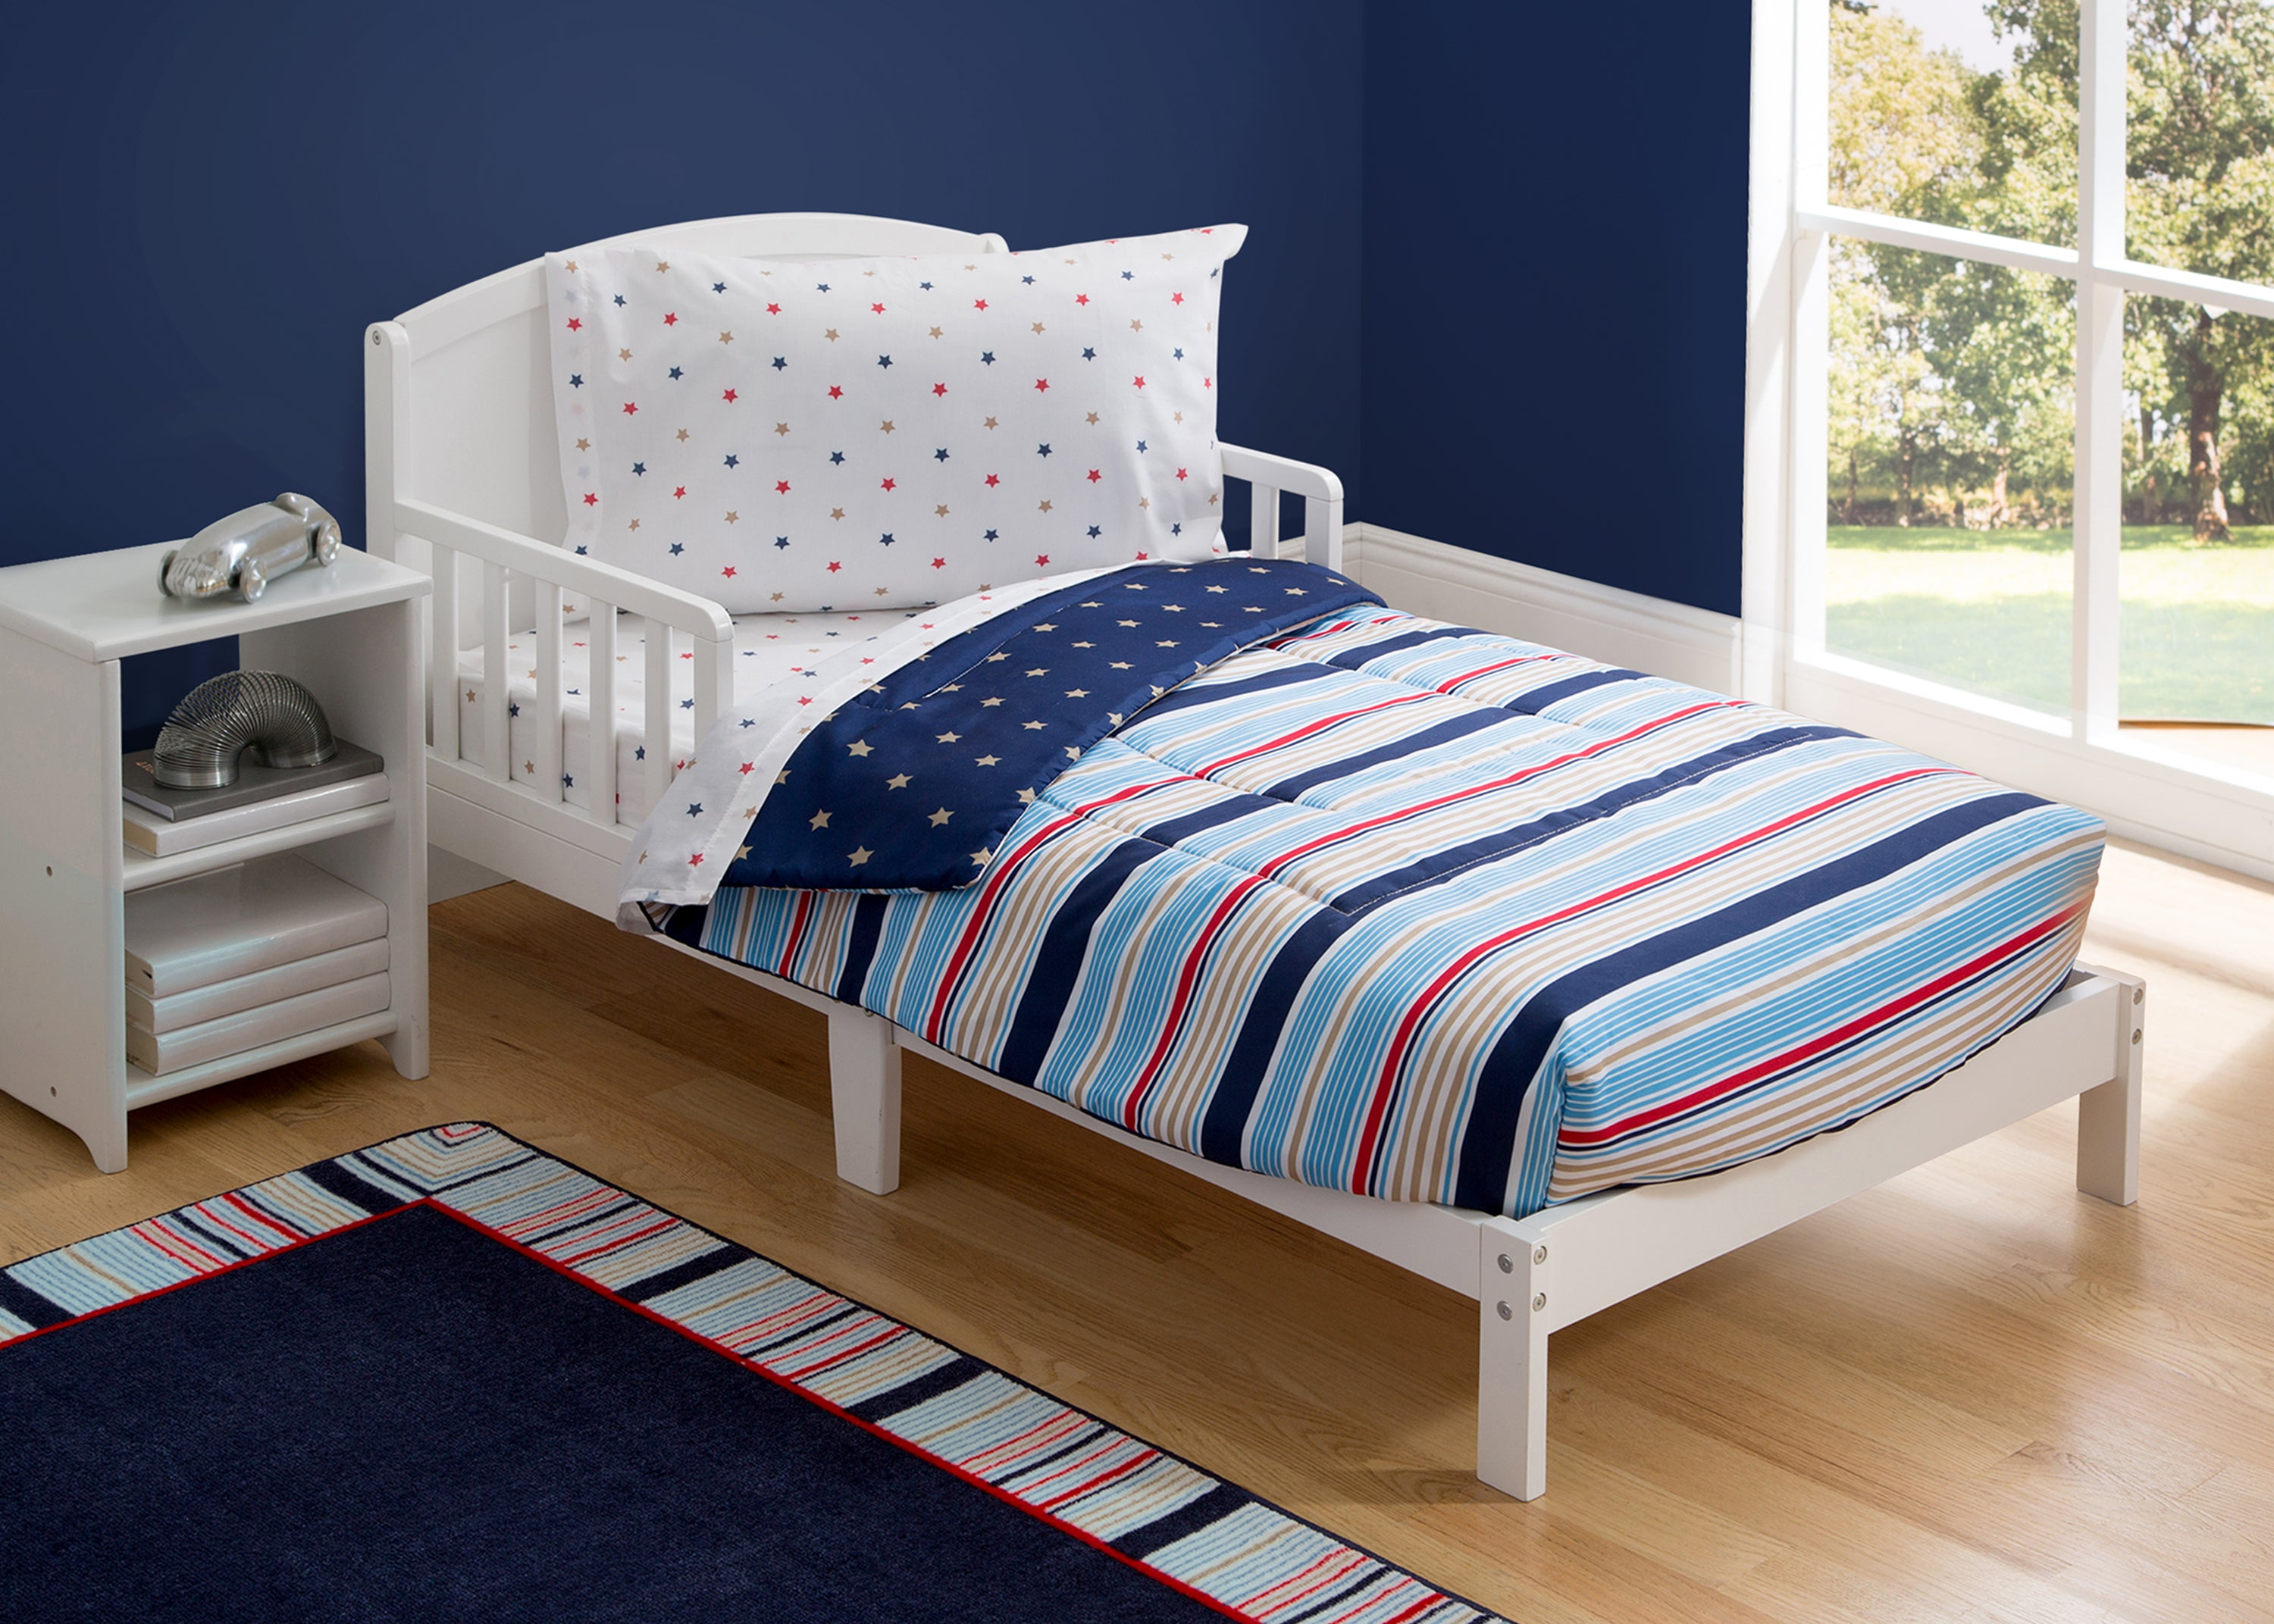 boy 4 piece toddler bedding set stars and stripes 2200 a1a - Toddler Bed Sets